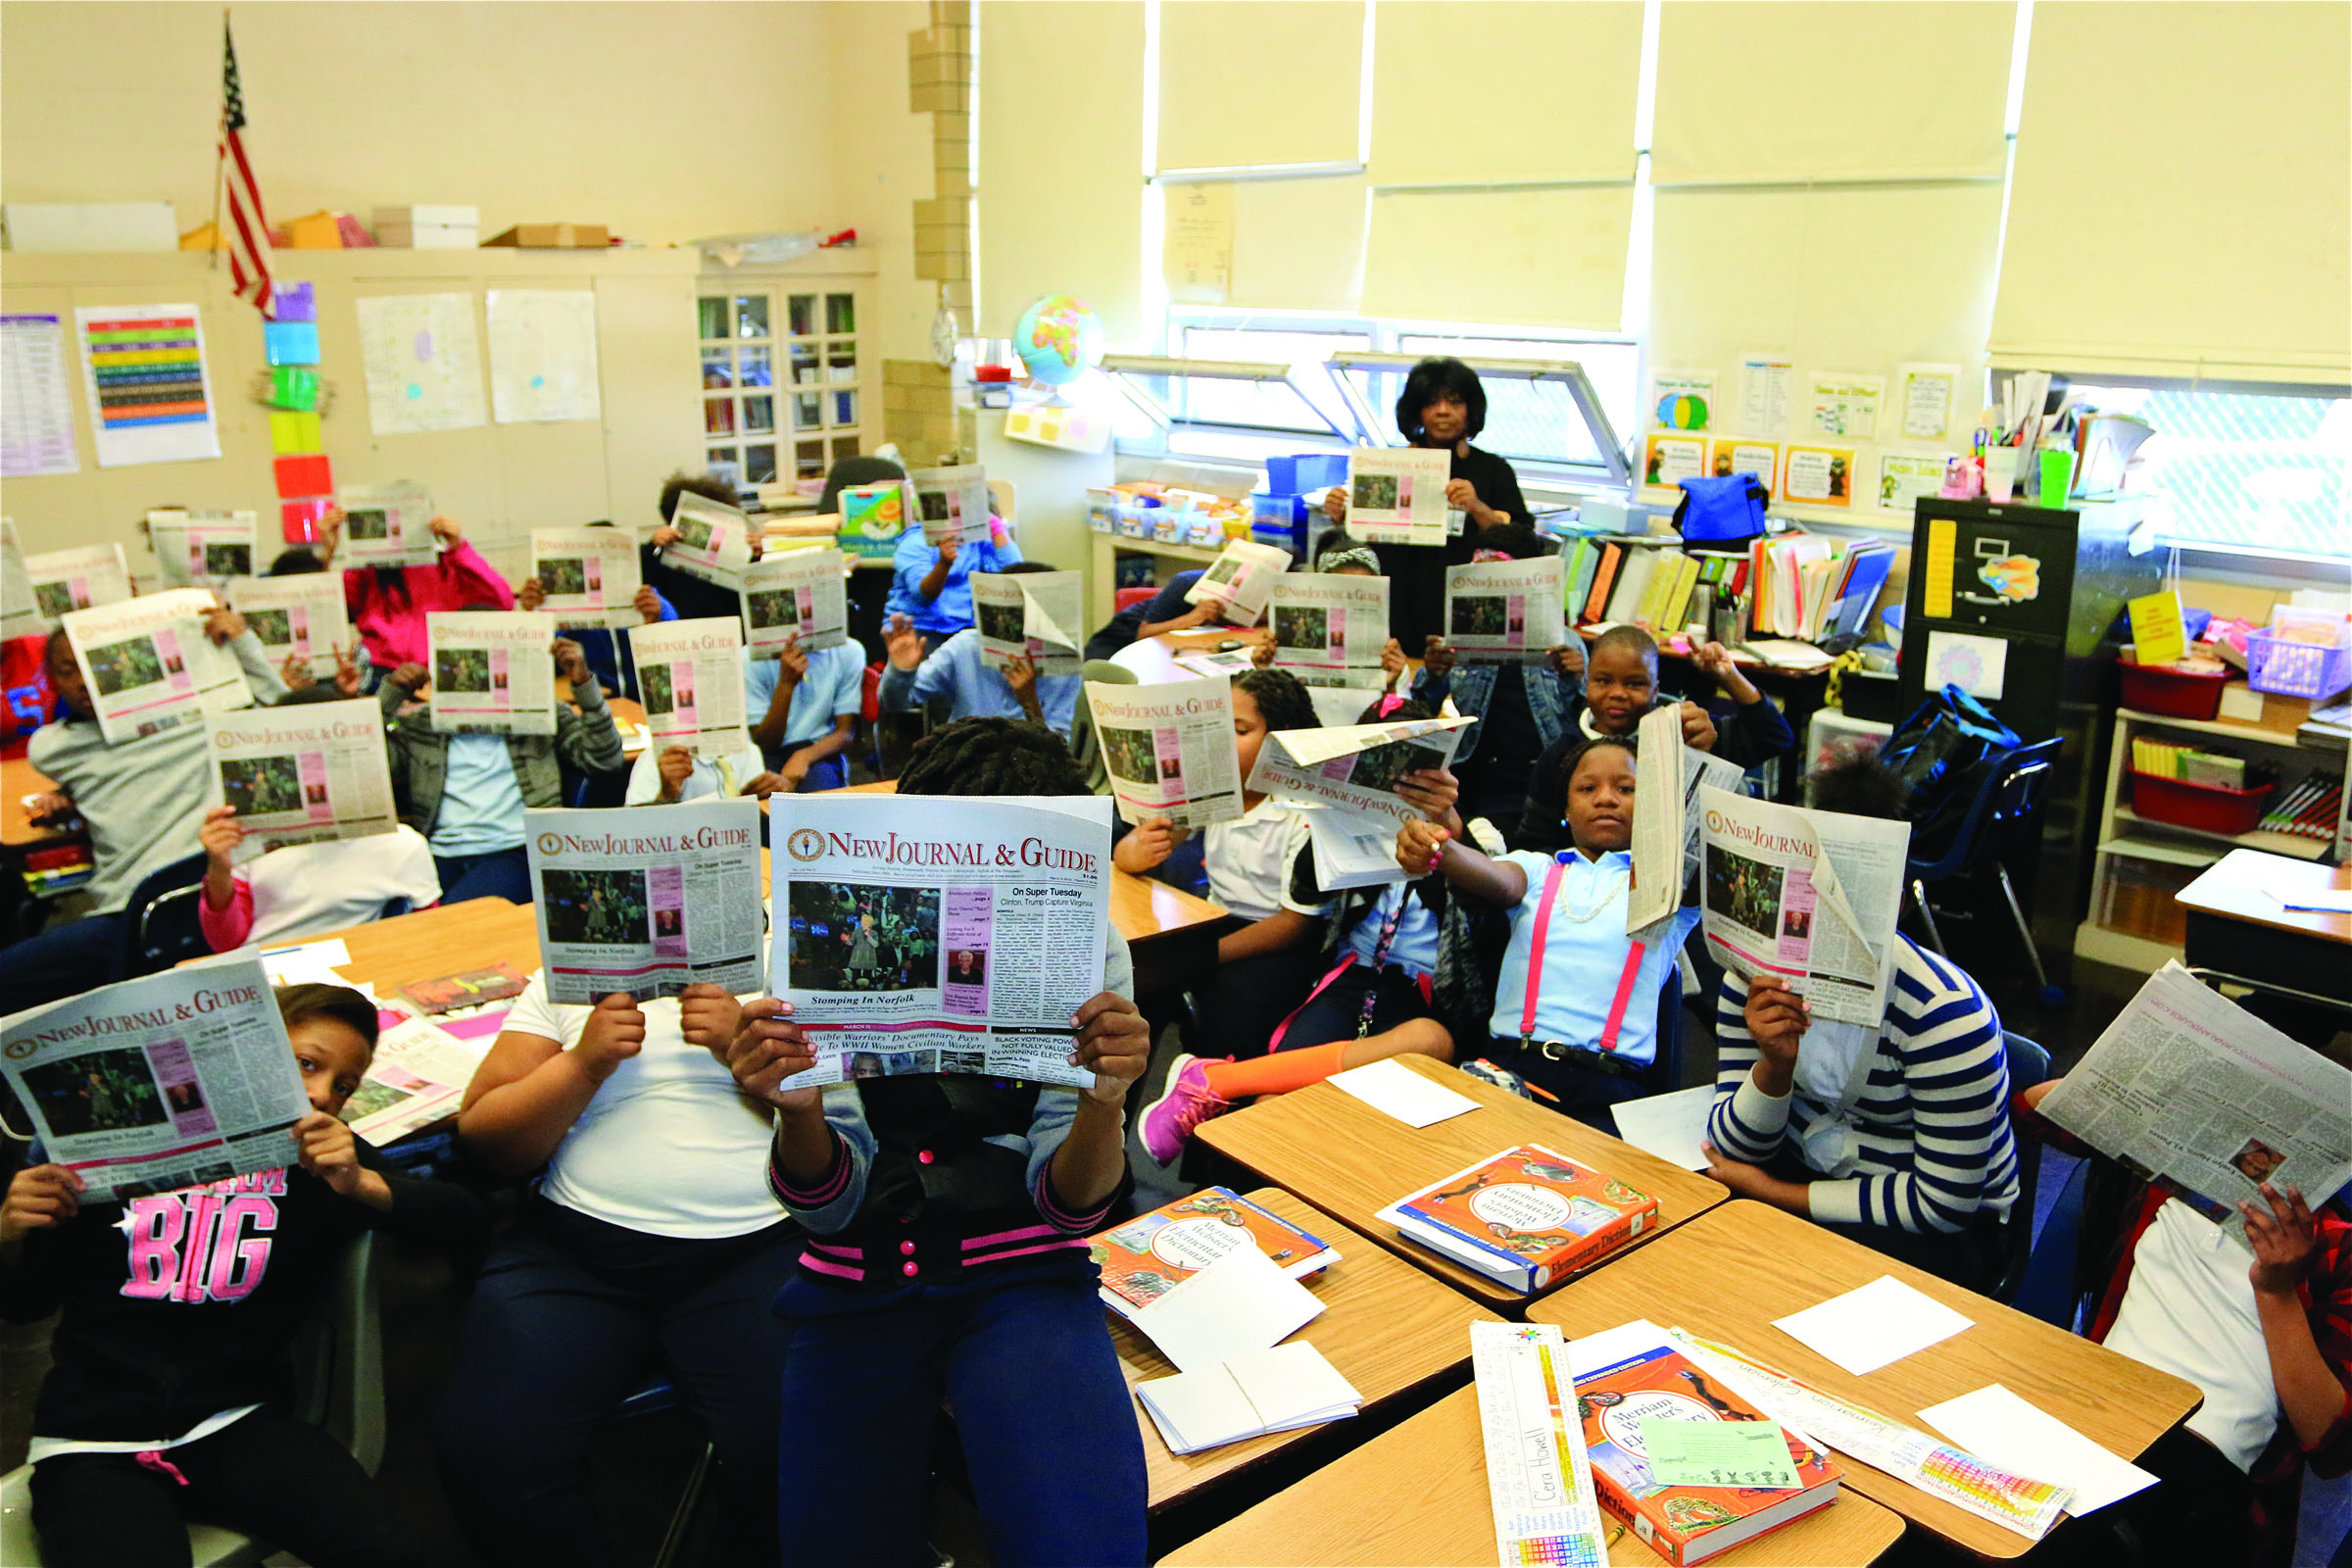 'Talking About Life' With Jacox Elem. Students